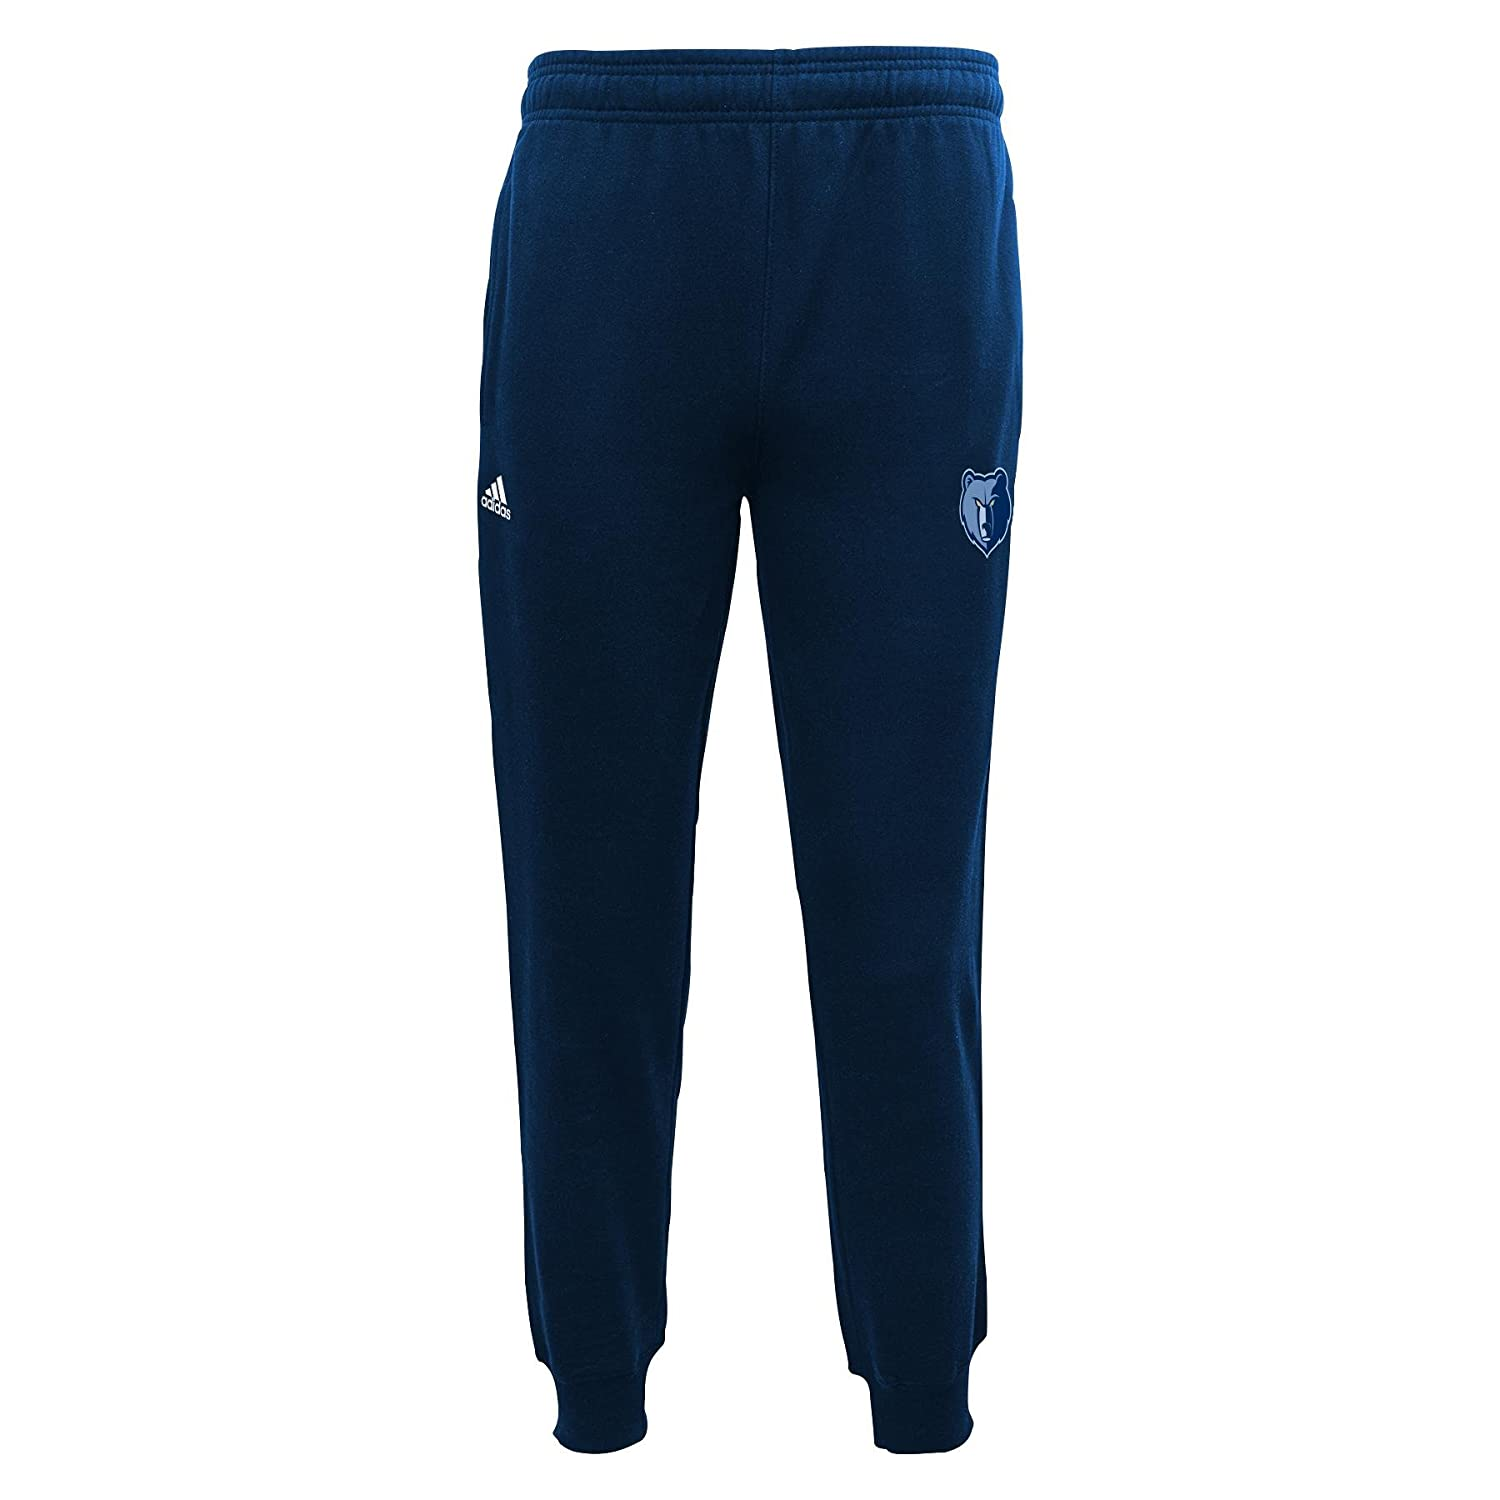 NBA Youth Boys 8-20 Slim Fit Fleece Pant adidas 2888J KN-Parent